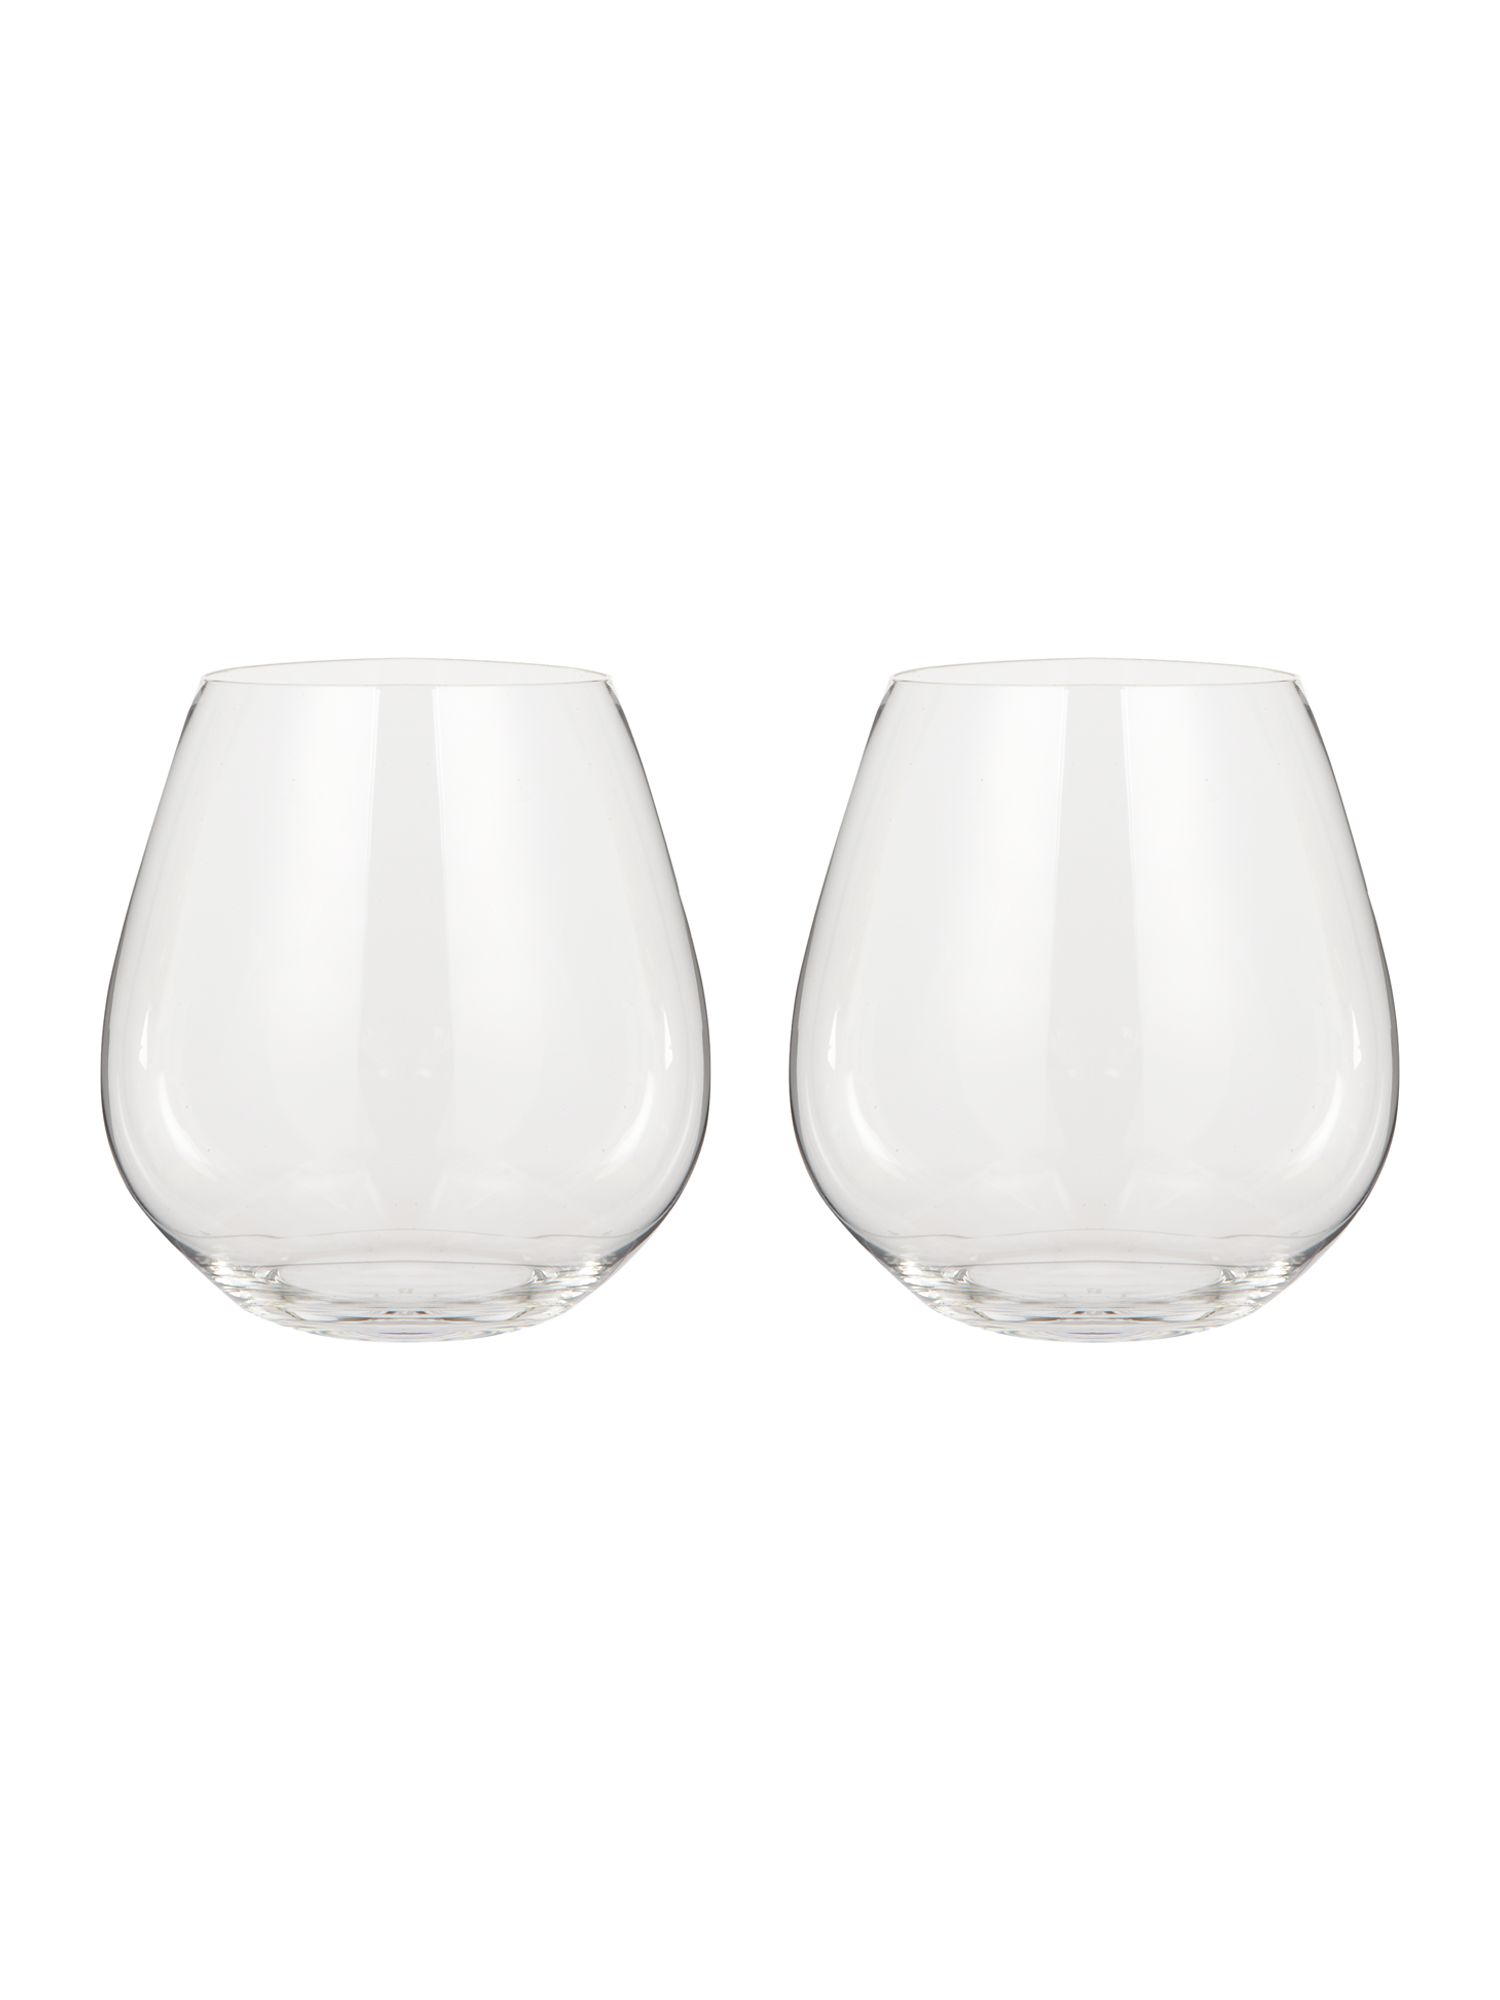 Image of Riedel O stemless pinot noir wine glass set of 2